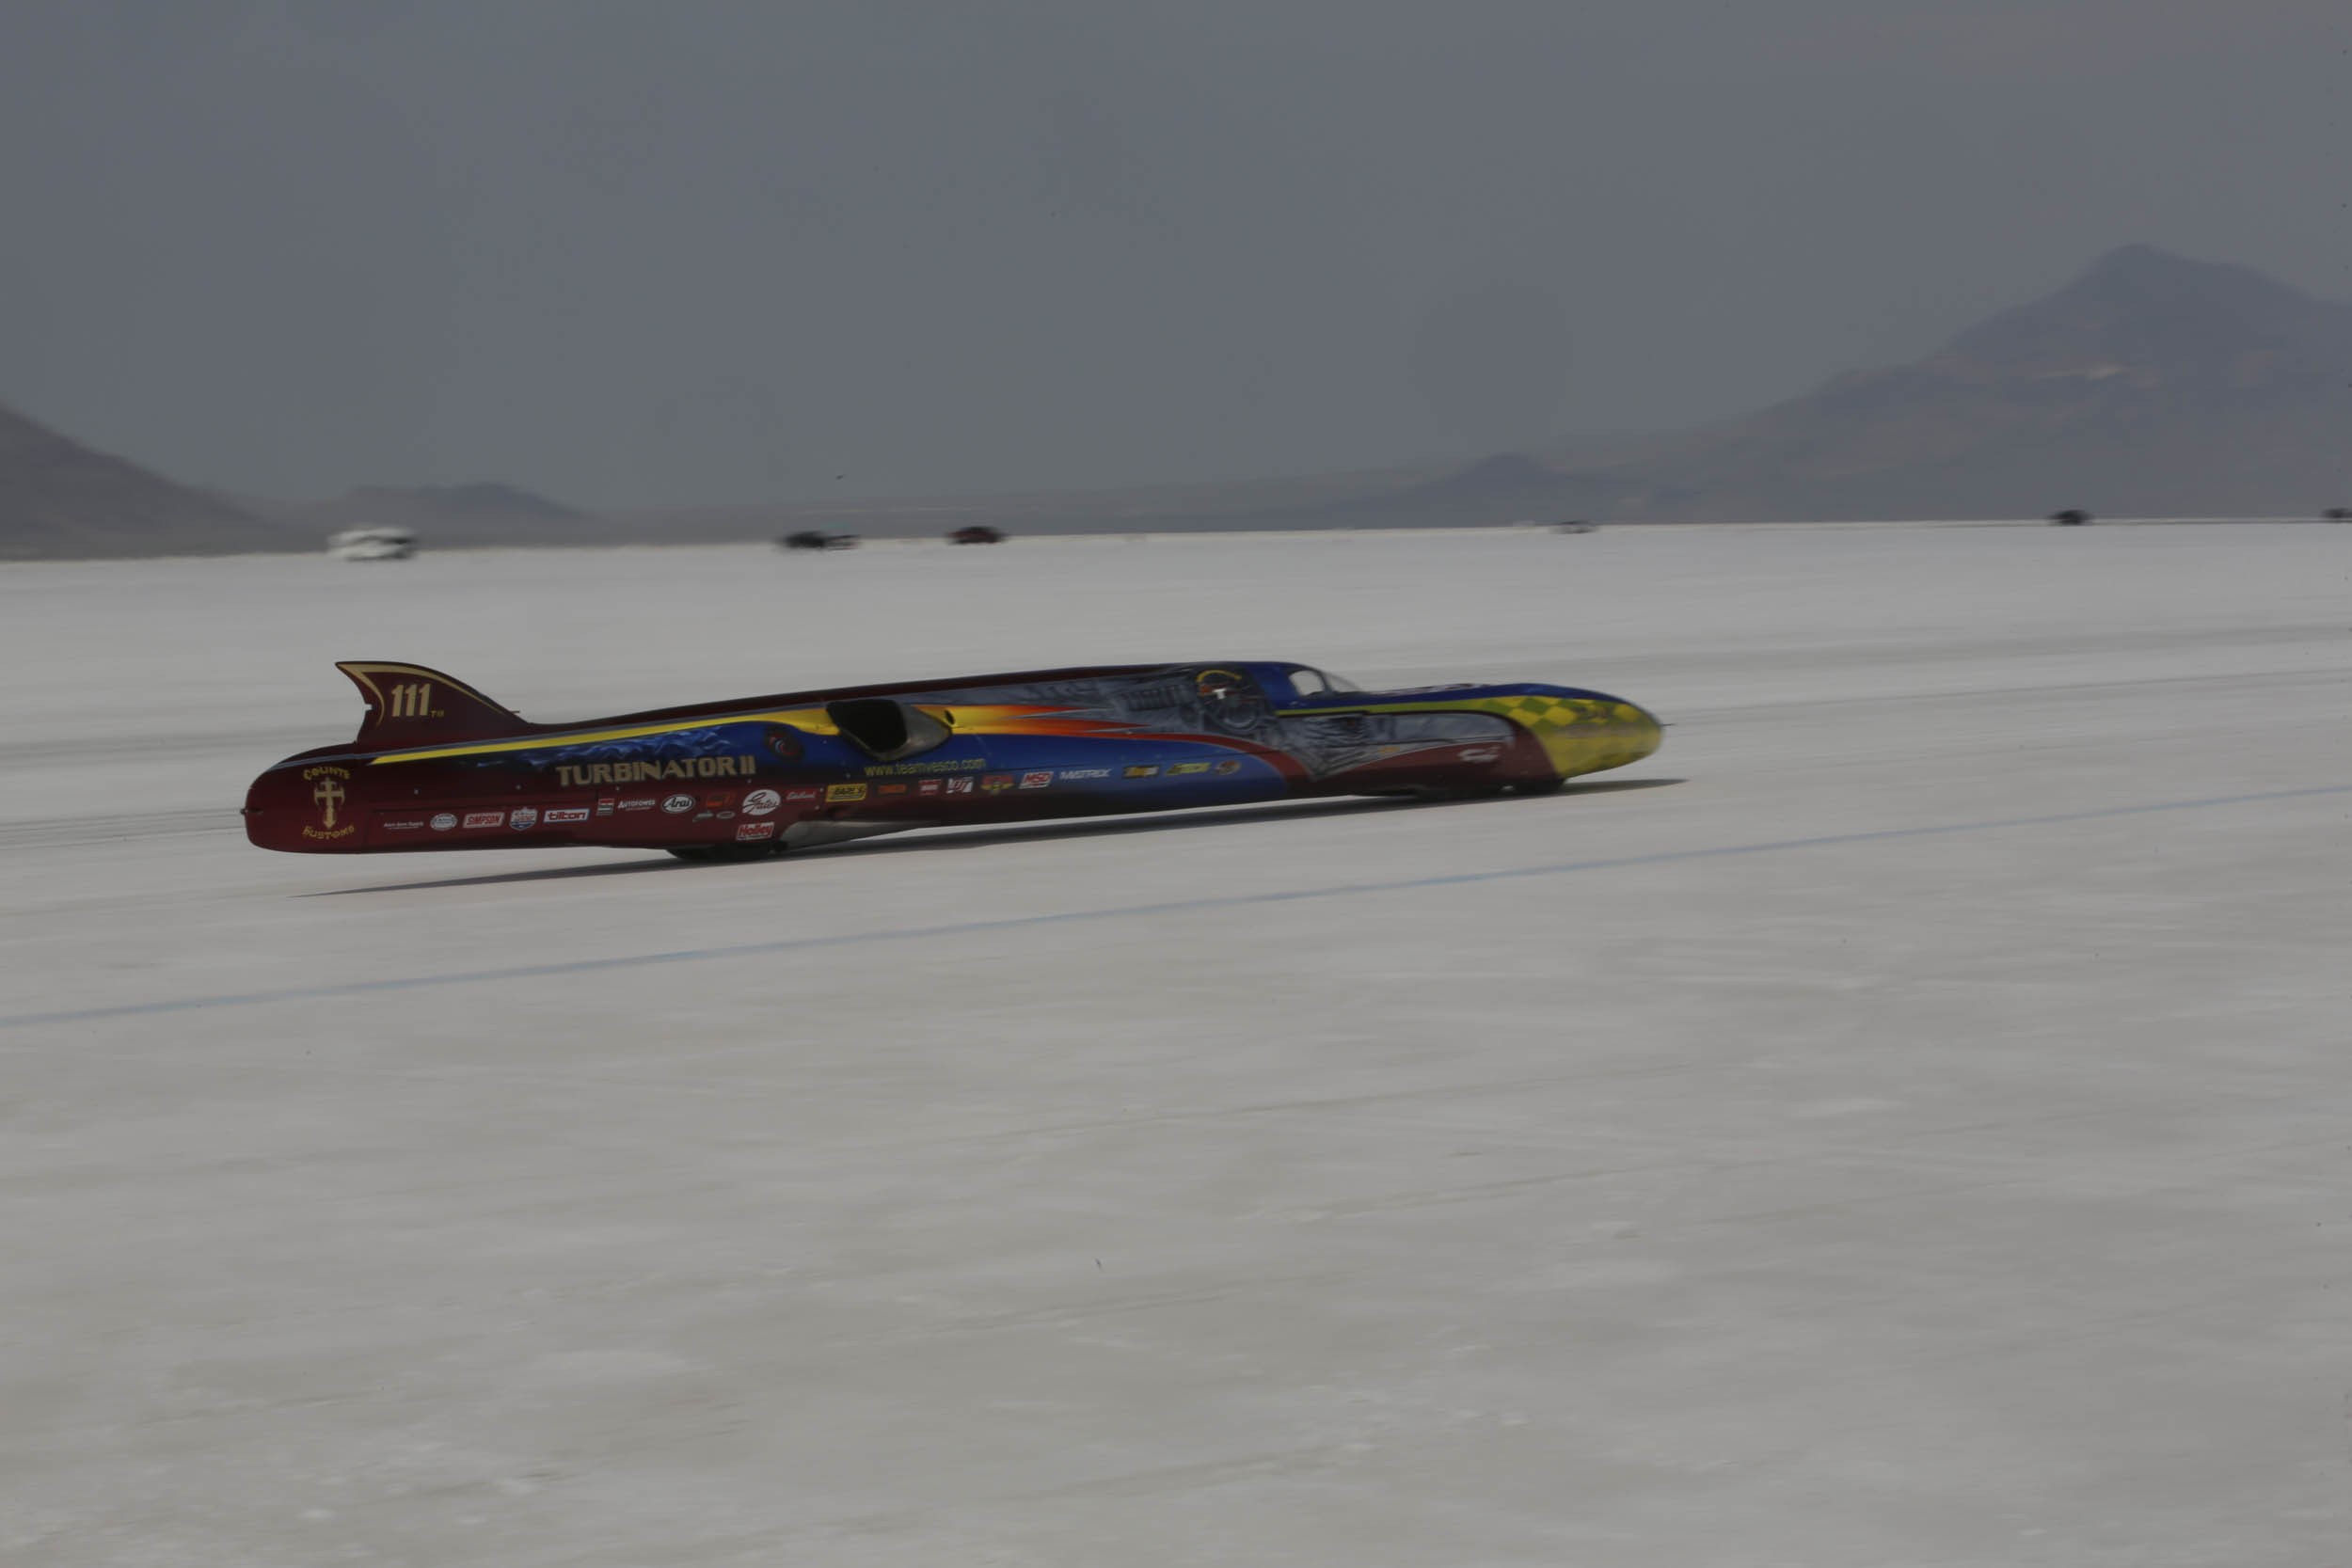 Team Vesco's Turbinator II streamliner had the fastest time of Speed Week as of Friday morning, but the Speed Demon team won't give up.